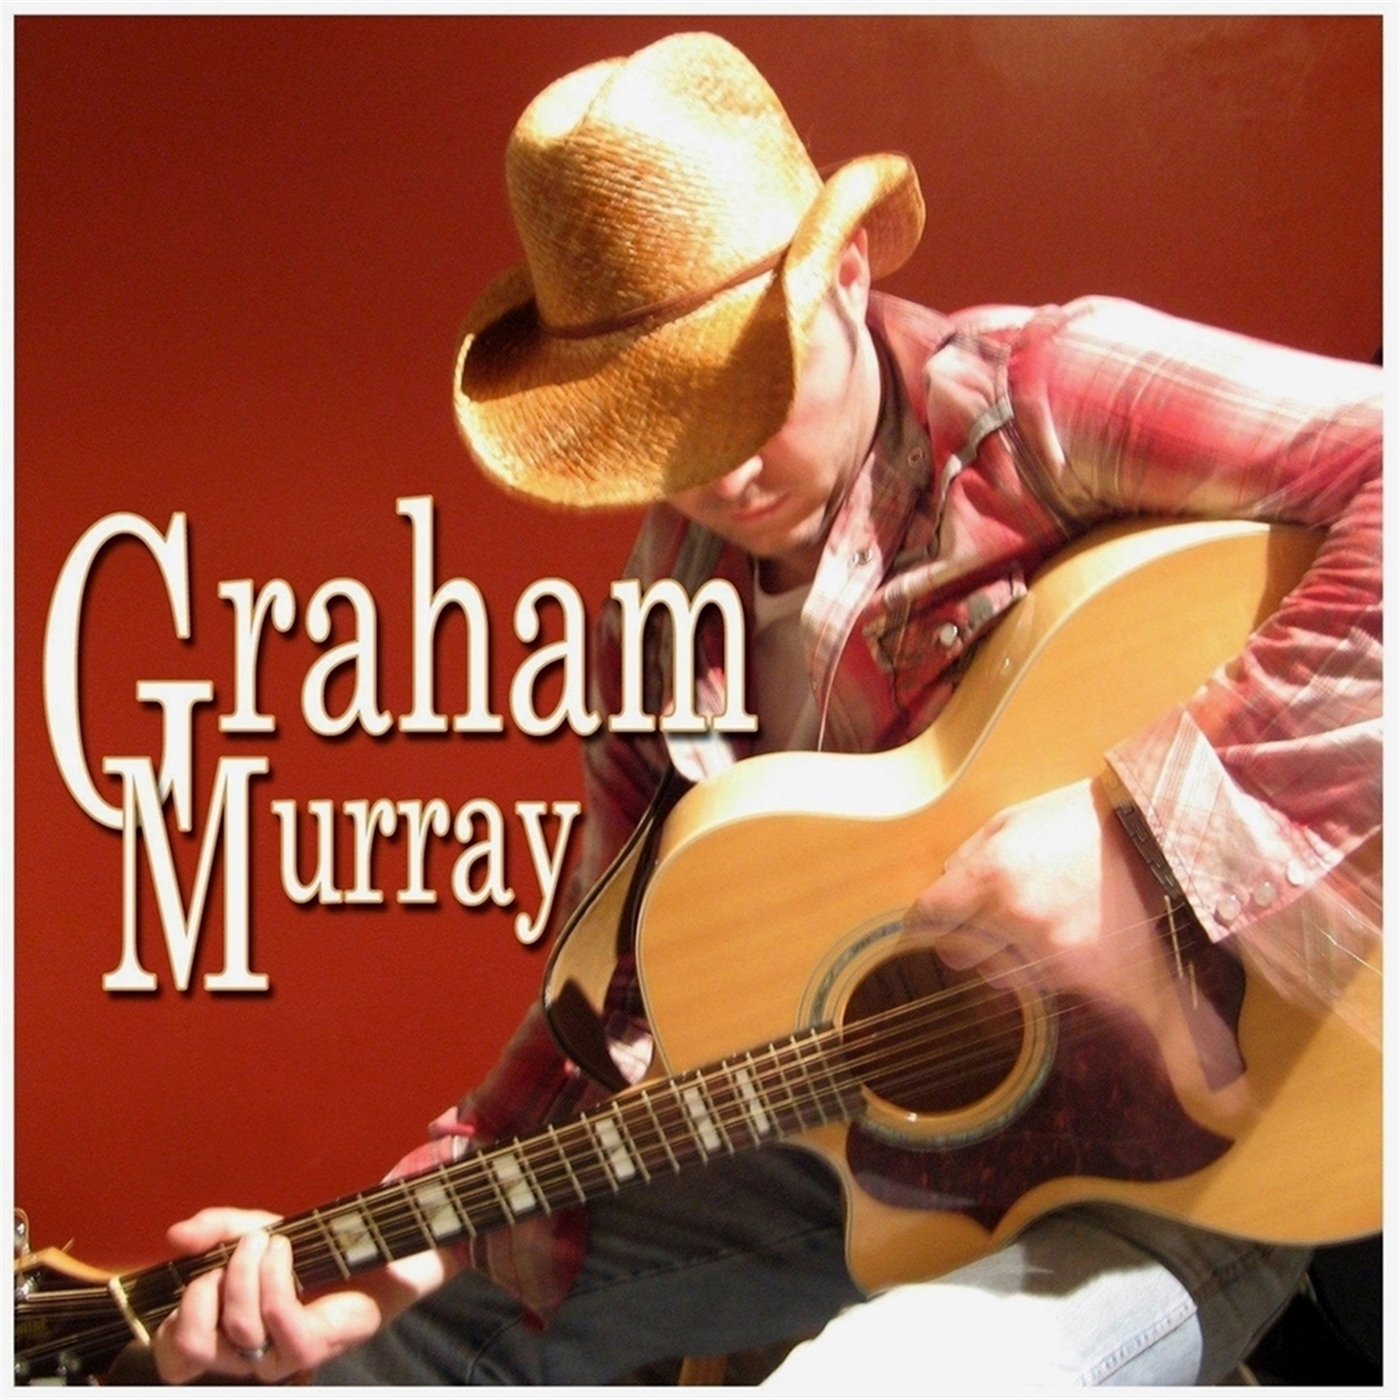 Graham_murray_ep